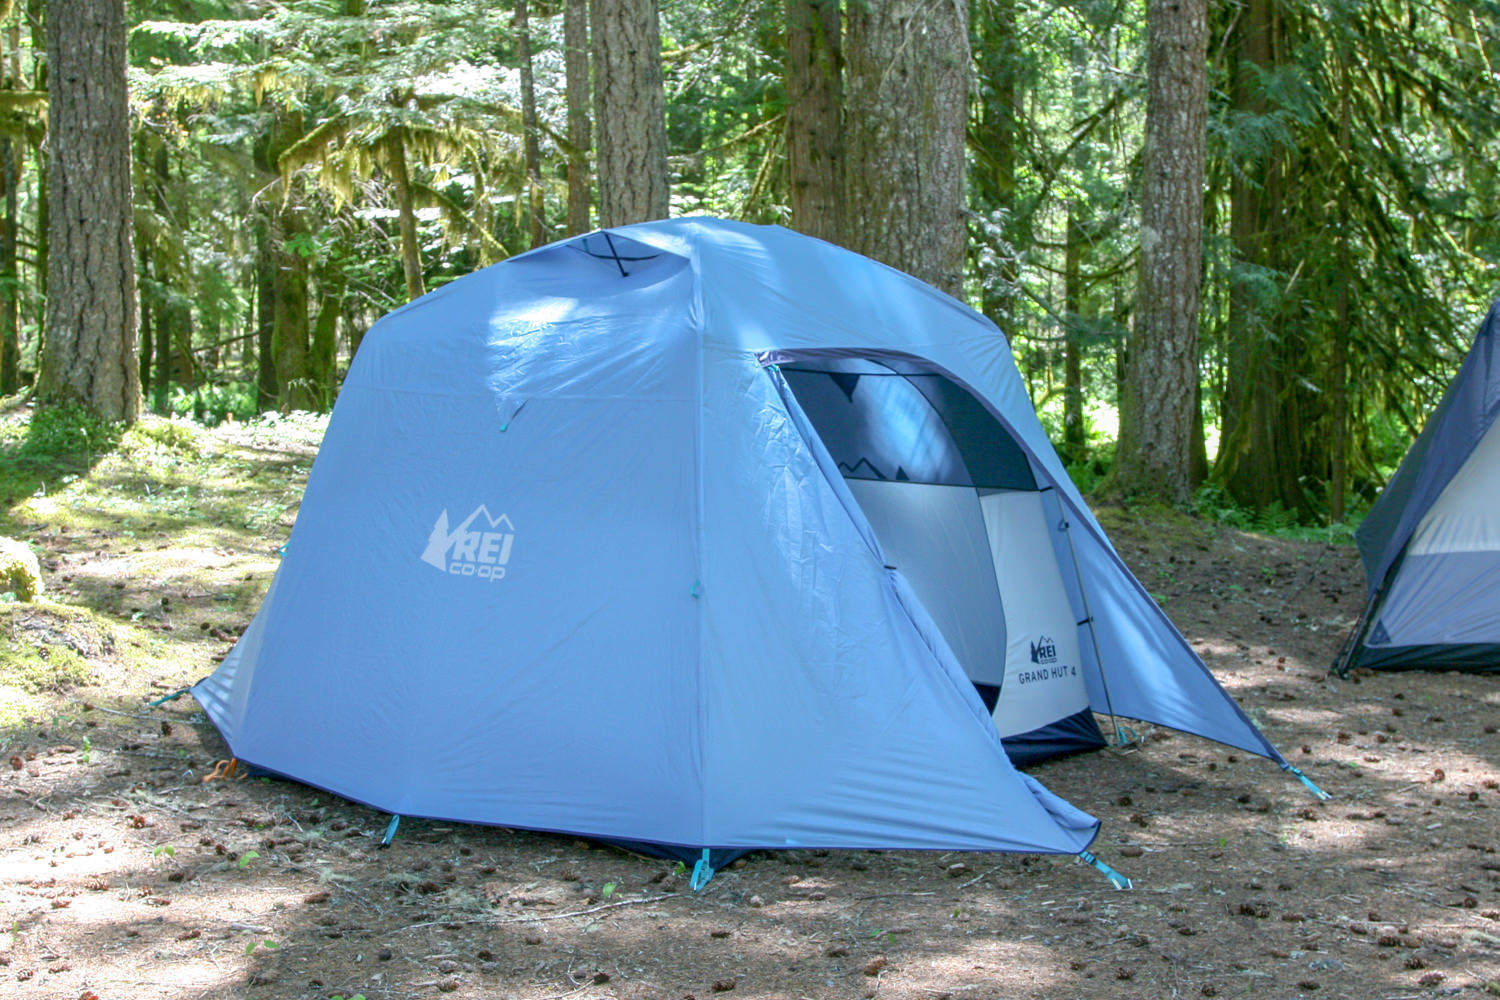 two large vestibules on each side allow you to keep your stored gear dry and protected.